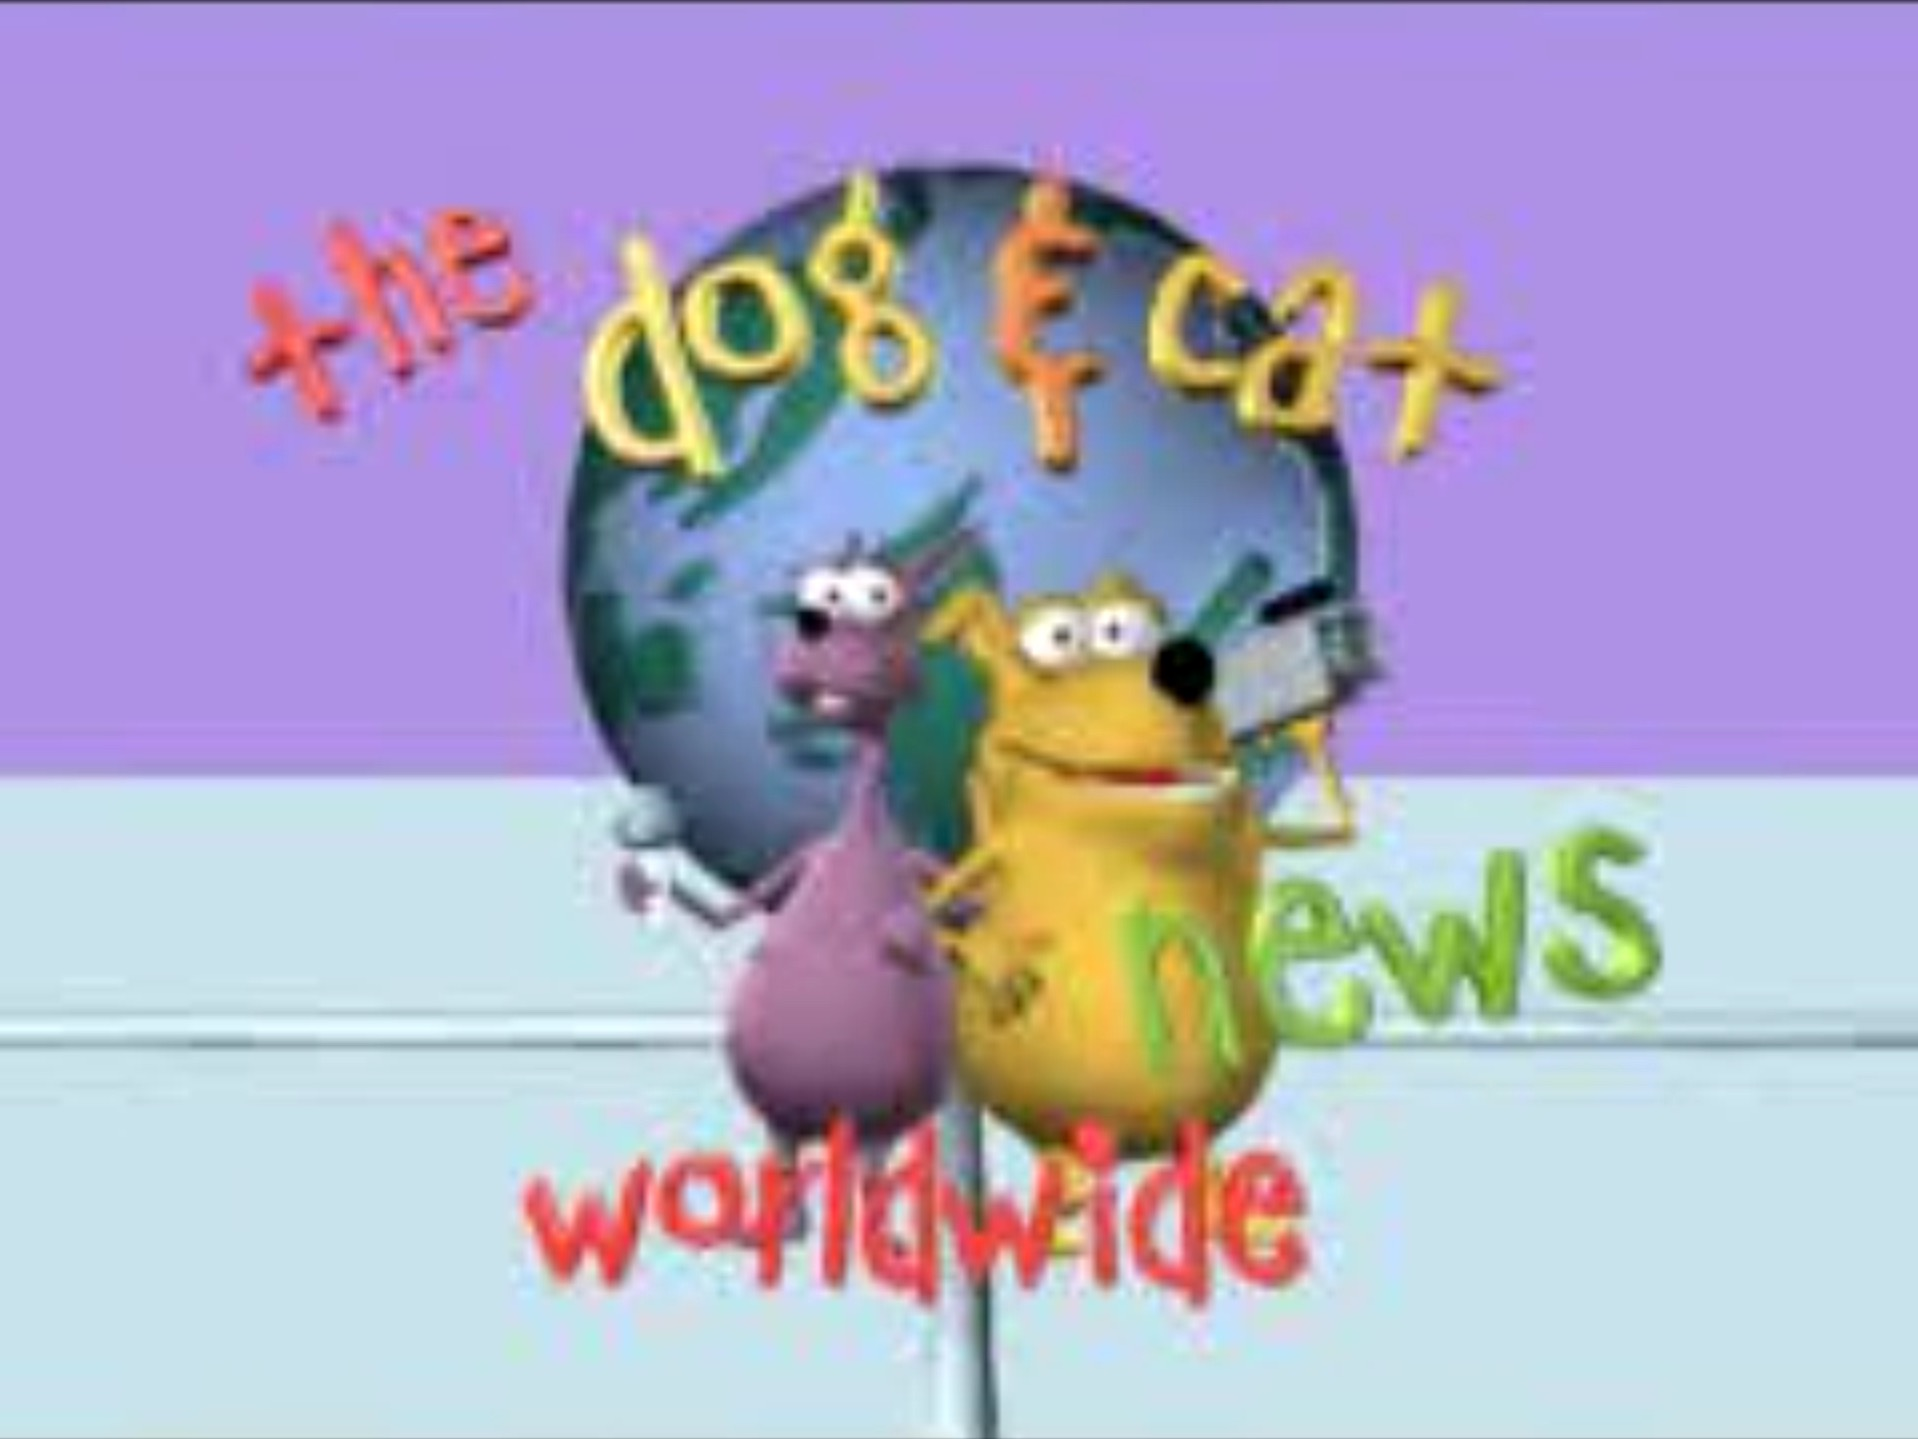 The Dog and Cat News - The Dog and Cat News (partially found Australian 3D animated series; mid-2000s)